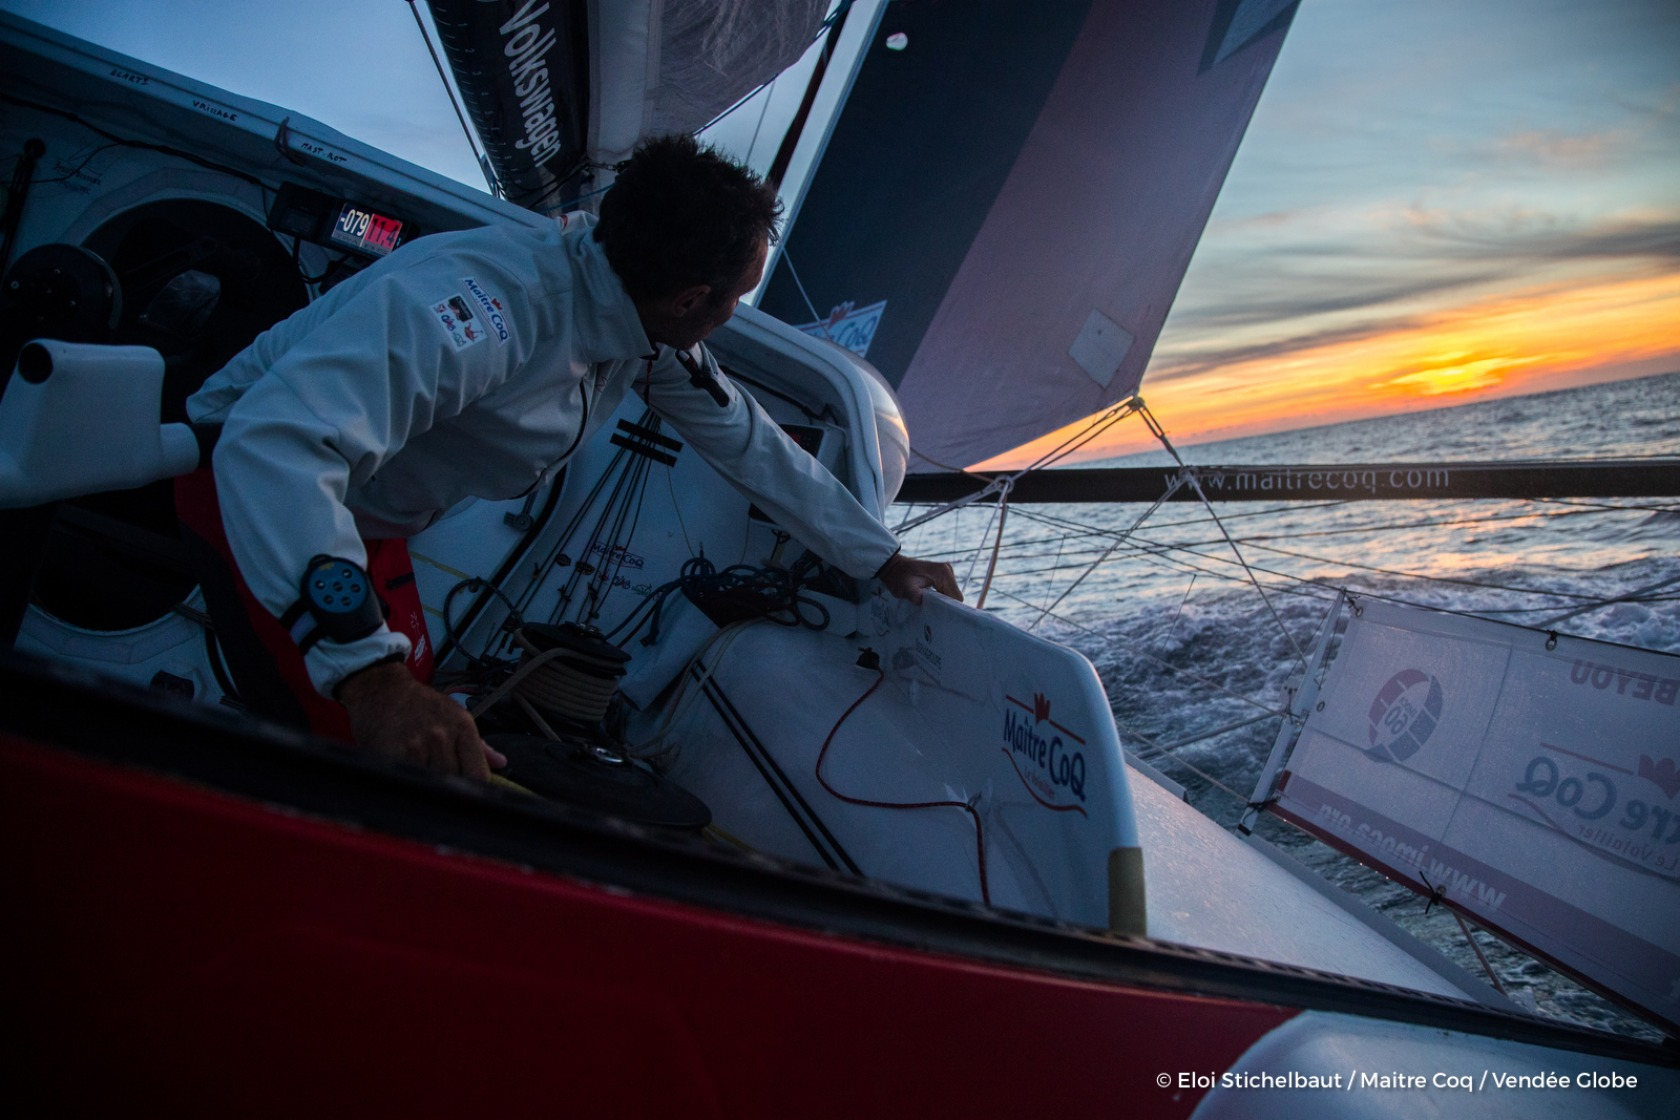 Onboard image bank while training for the Vendee Globe of IMOCA Maitre COQ, skipper Jeremie Beyou (FRA), off Belle-Ile, on September 23rd, 2016 - Photo Eloi Stichelbaut / Maitre Coq / Vendee GlobeImages embarquées de Jeremie Beyou (FRA), skipper Maitre